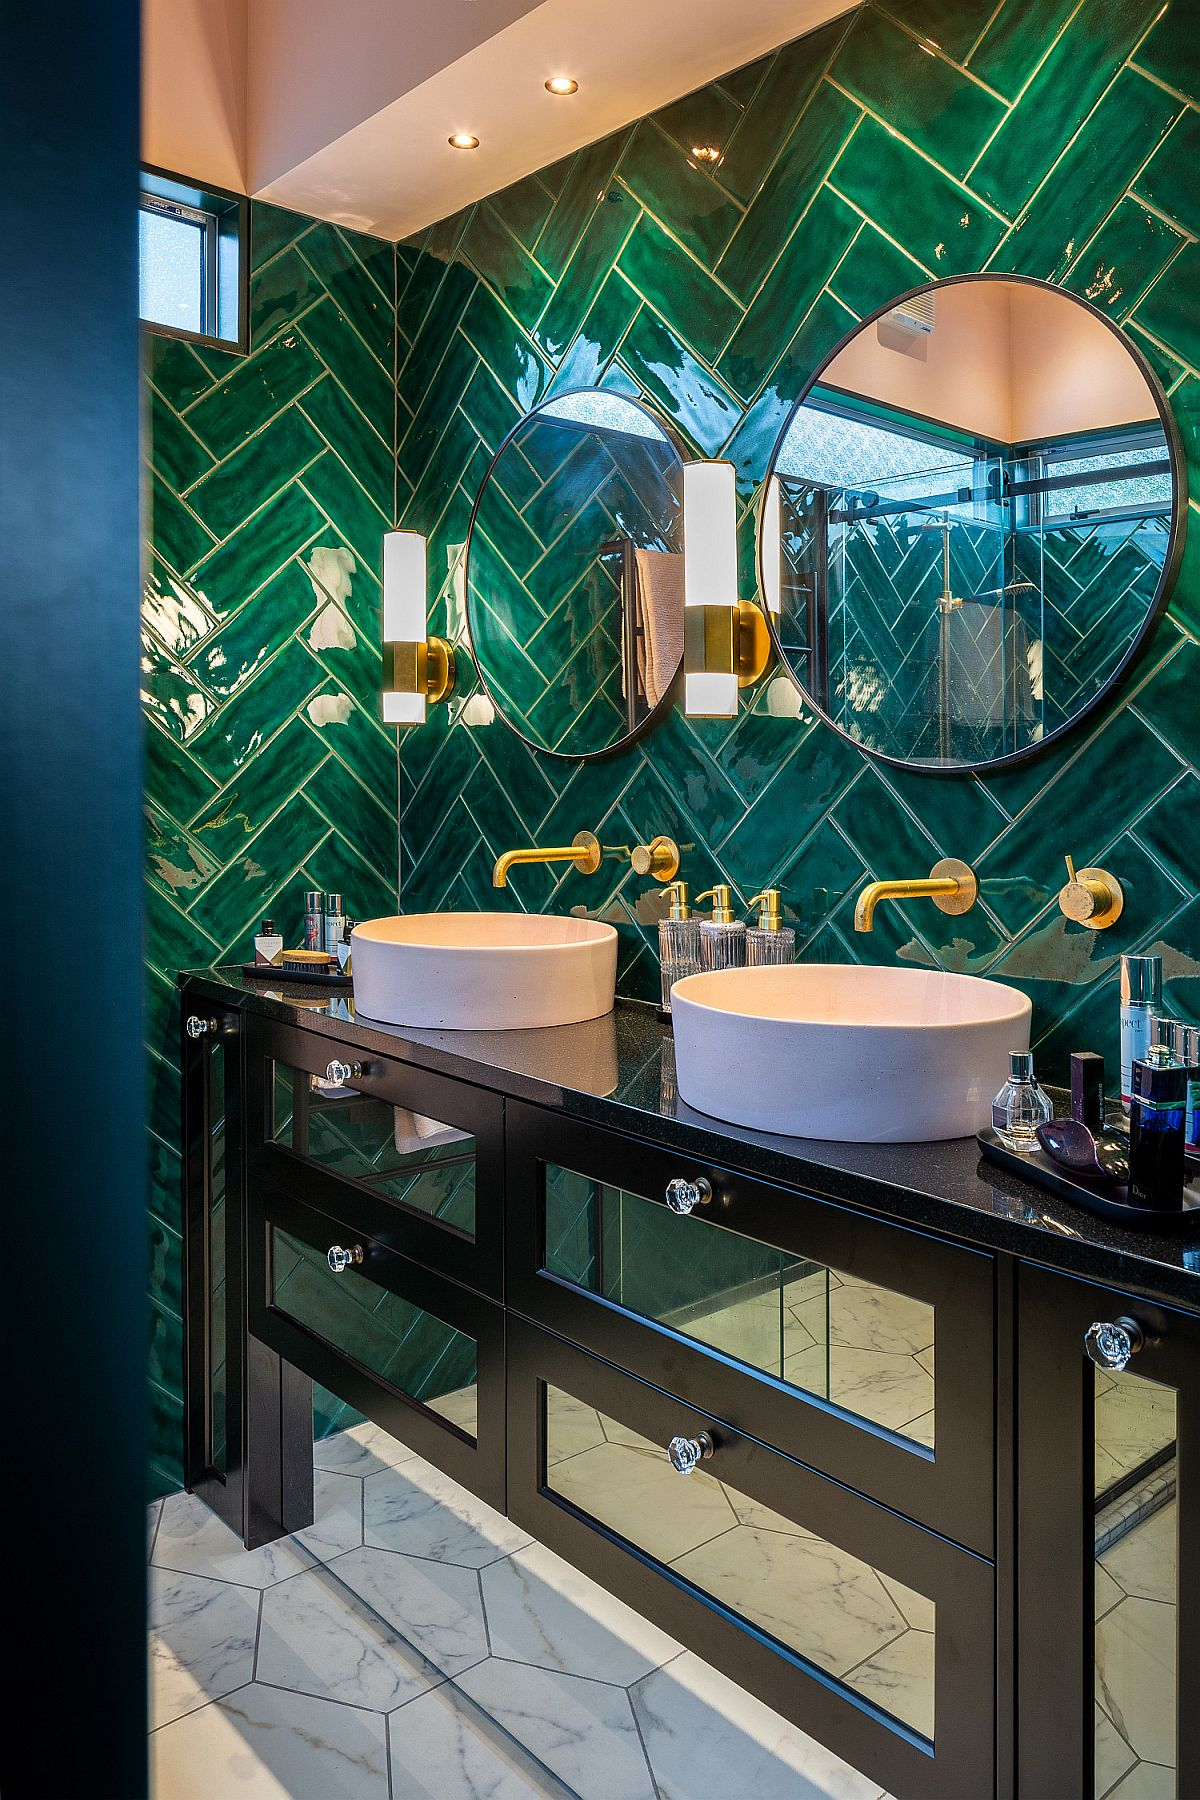 Modern-tropical-style-bathroom-with-dashing-green-tiles-in-herringbone-20231